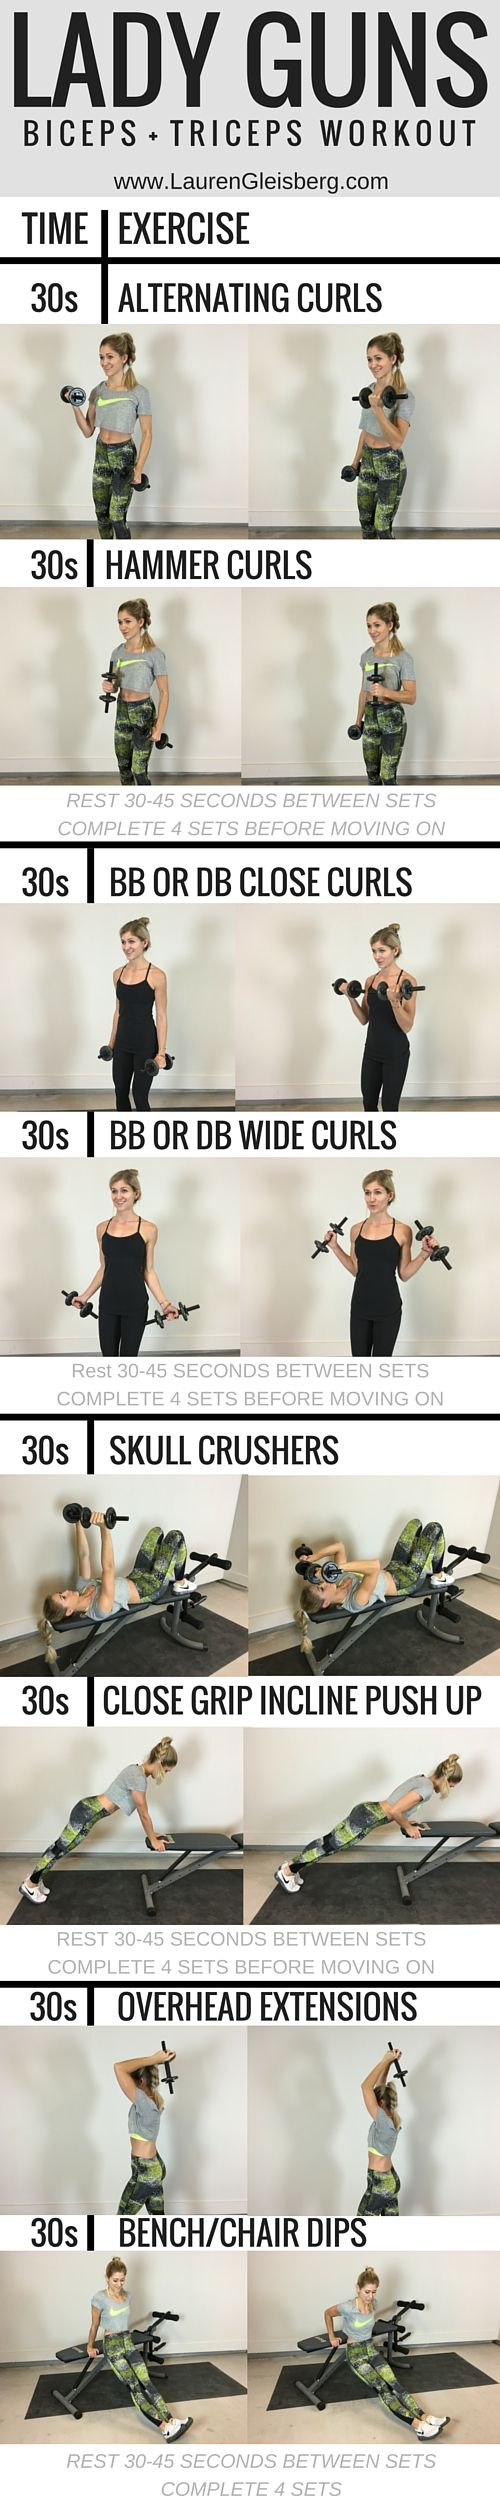 W4D2- biceps – Lauren Gleisberg LEAN PORTION WORKOUT:  Switch Up #2 Today = JUMP ROPE! If you've ever wanted to feel those arms ((and calves!)) burnout after a bicep + tricep workout, 10 mins: 30 sec on, 30 sec off If you don't have a jump rope or can't indoors, go through the motions ((it's just as challenging))